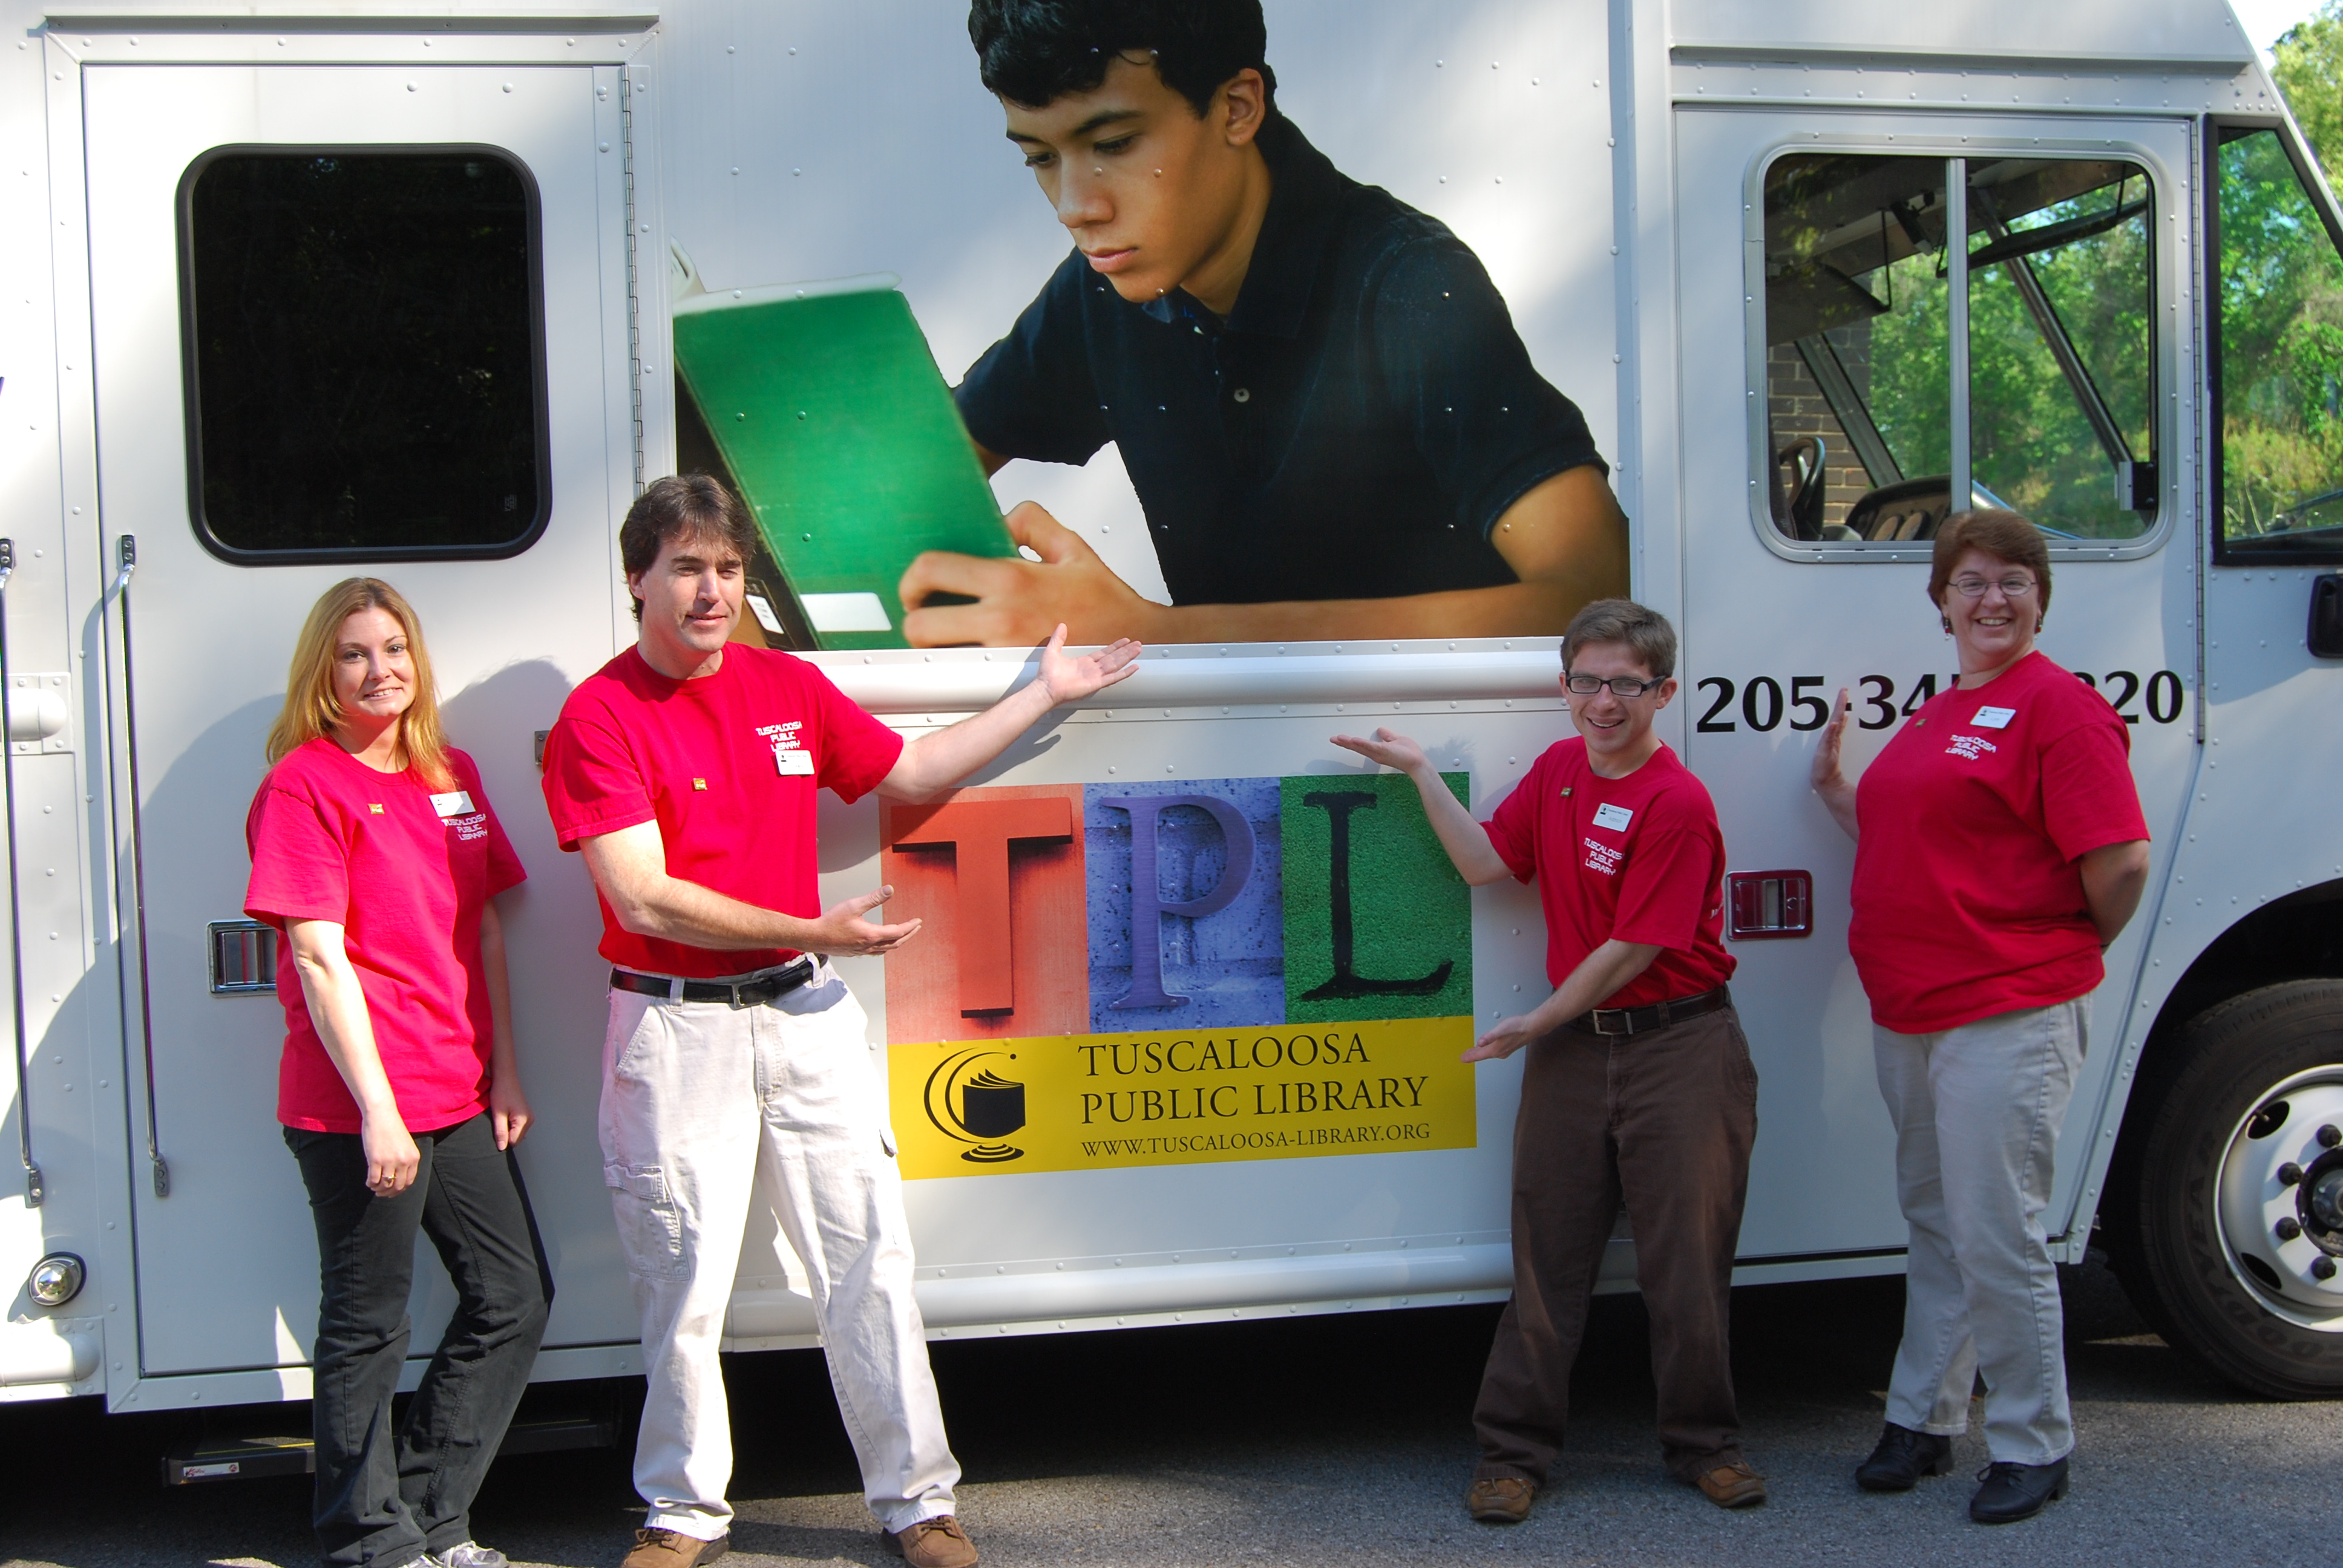 Staffers (left to right) Tammy Adams, Kelly Butler, Addison Canevaro, and Lynn Allen show off the Tuscaloosa (Ala.) Public Library bookmobile during National Bookmobile Day April 13, as part of NLW.